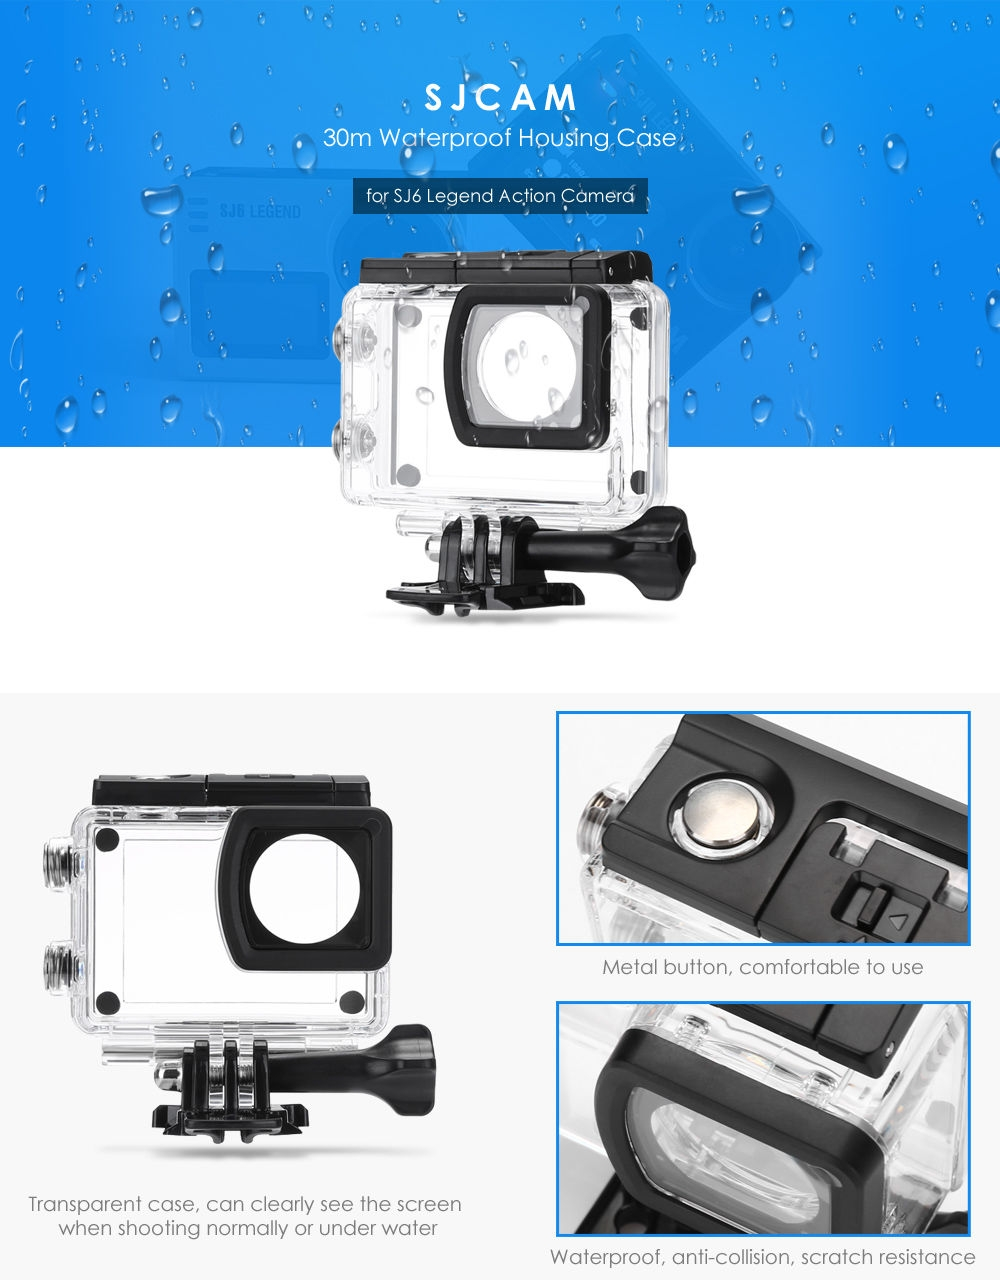 SJCAM 30m Waterproof Housing Case for SJ6 Legend Action Camera